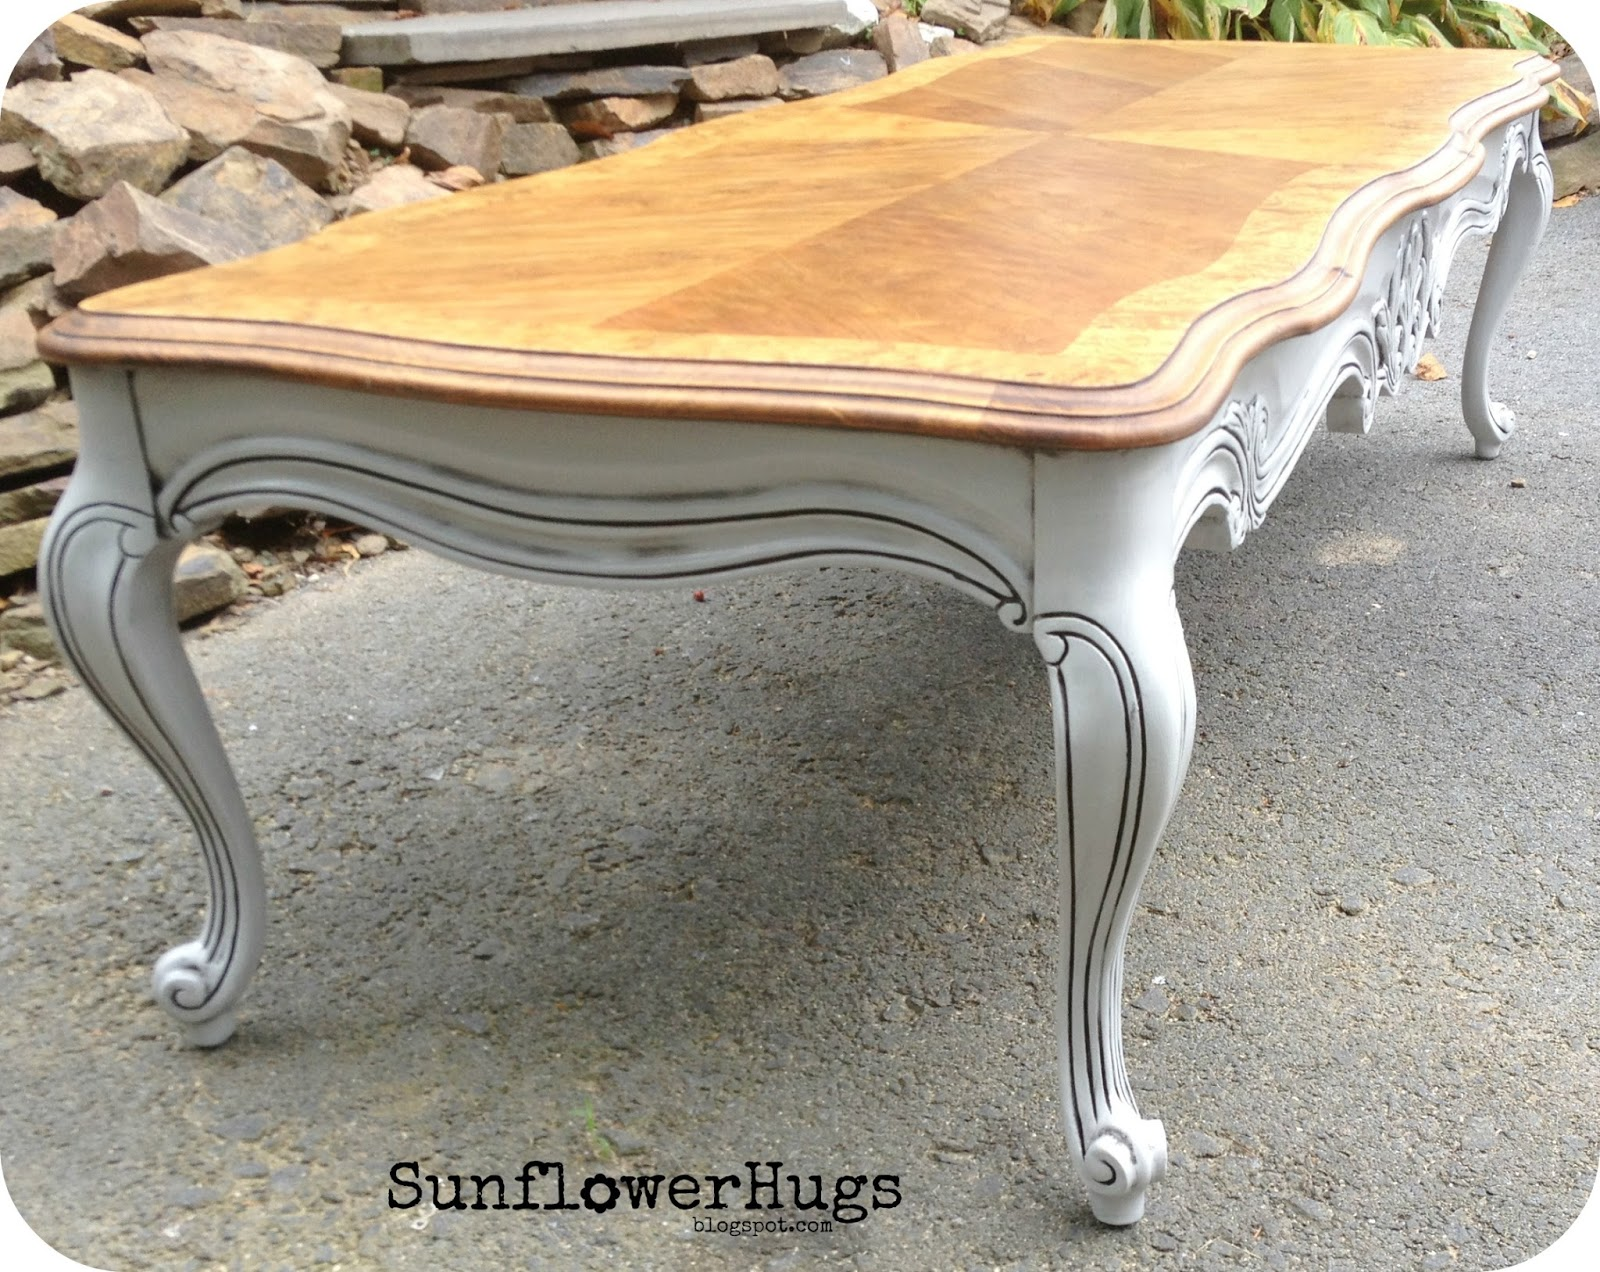 Sunflowerhugs 5 39 Long French Country Coffee Table